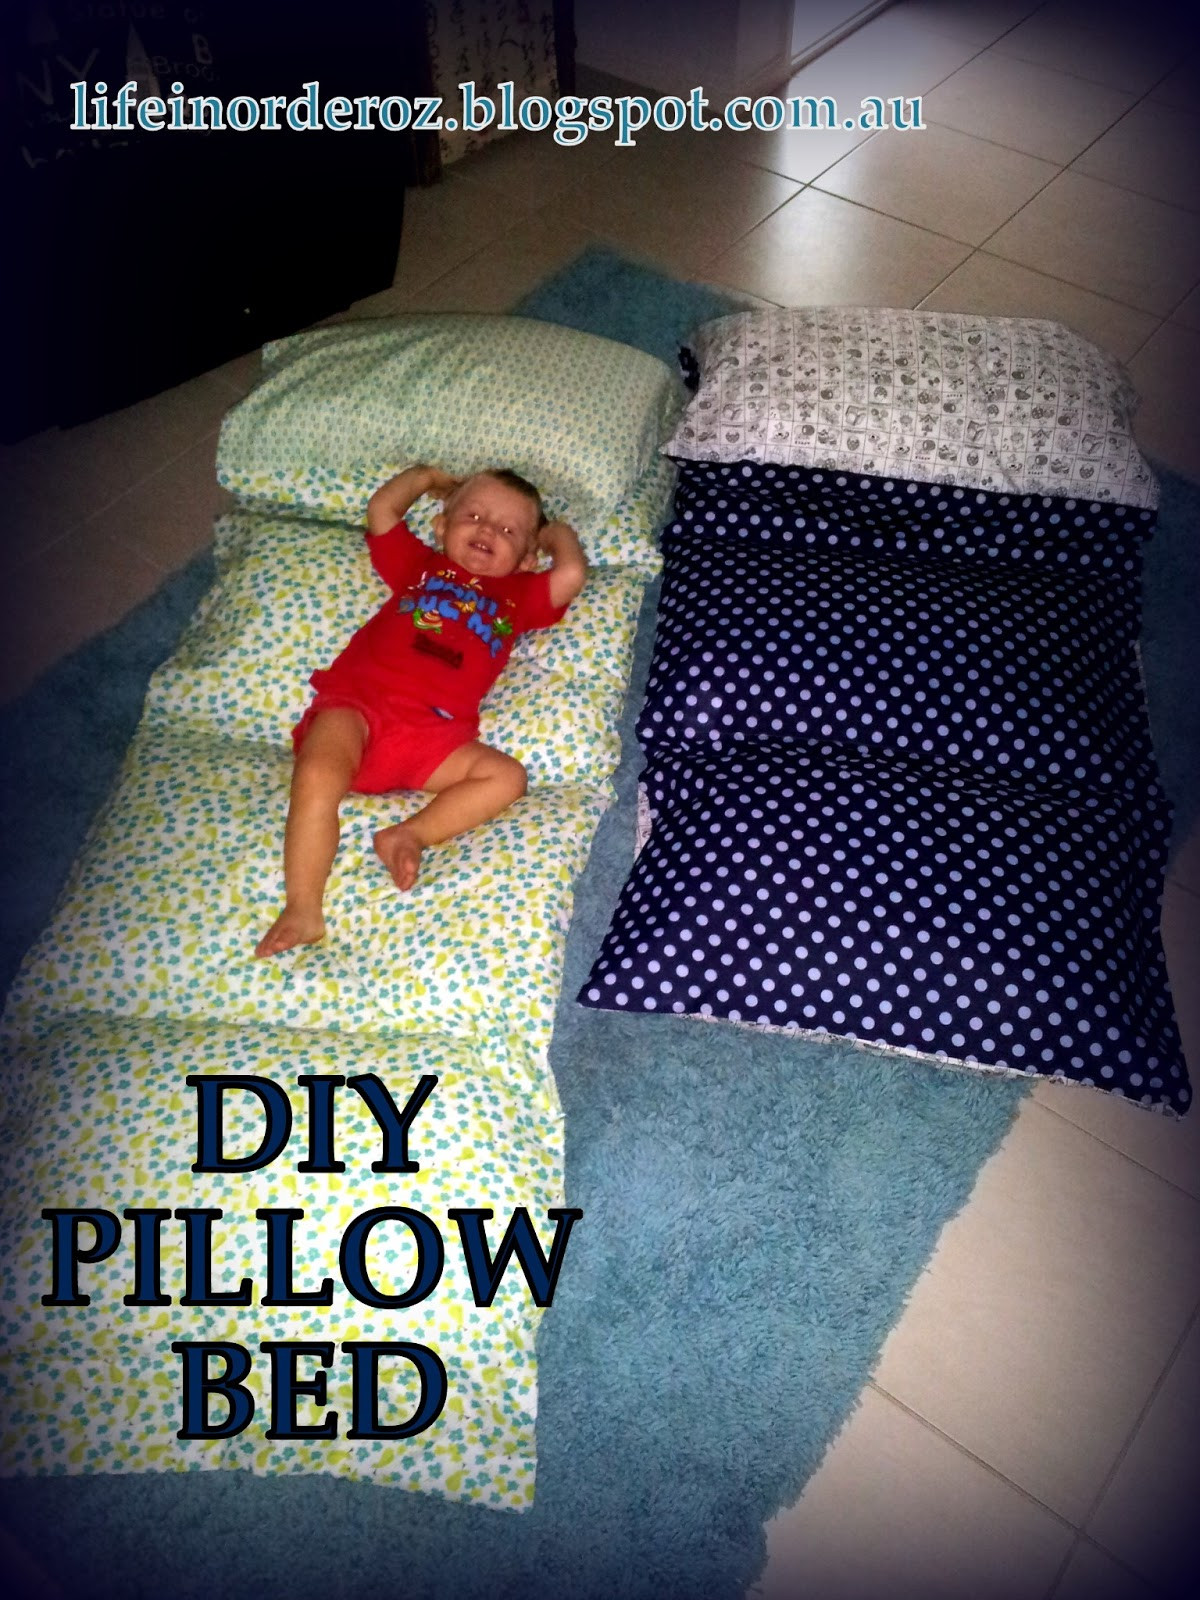 Best ideas about Pillow Bed DIY . Save or Pin Life in Order DIY Pillow Bed Tutorial Now.